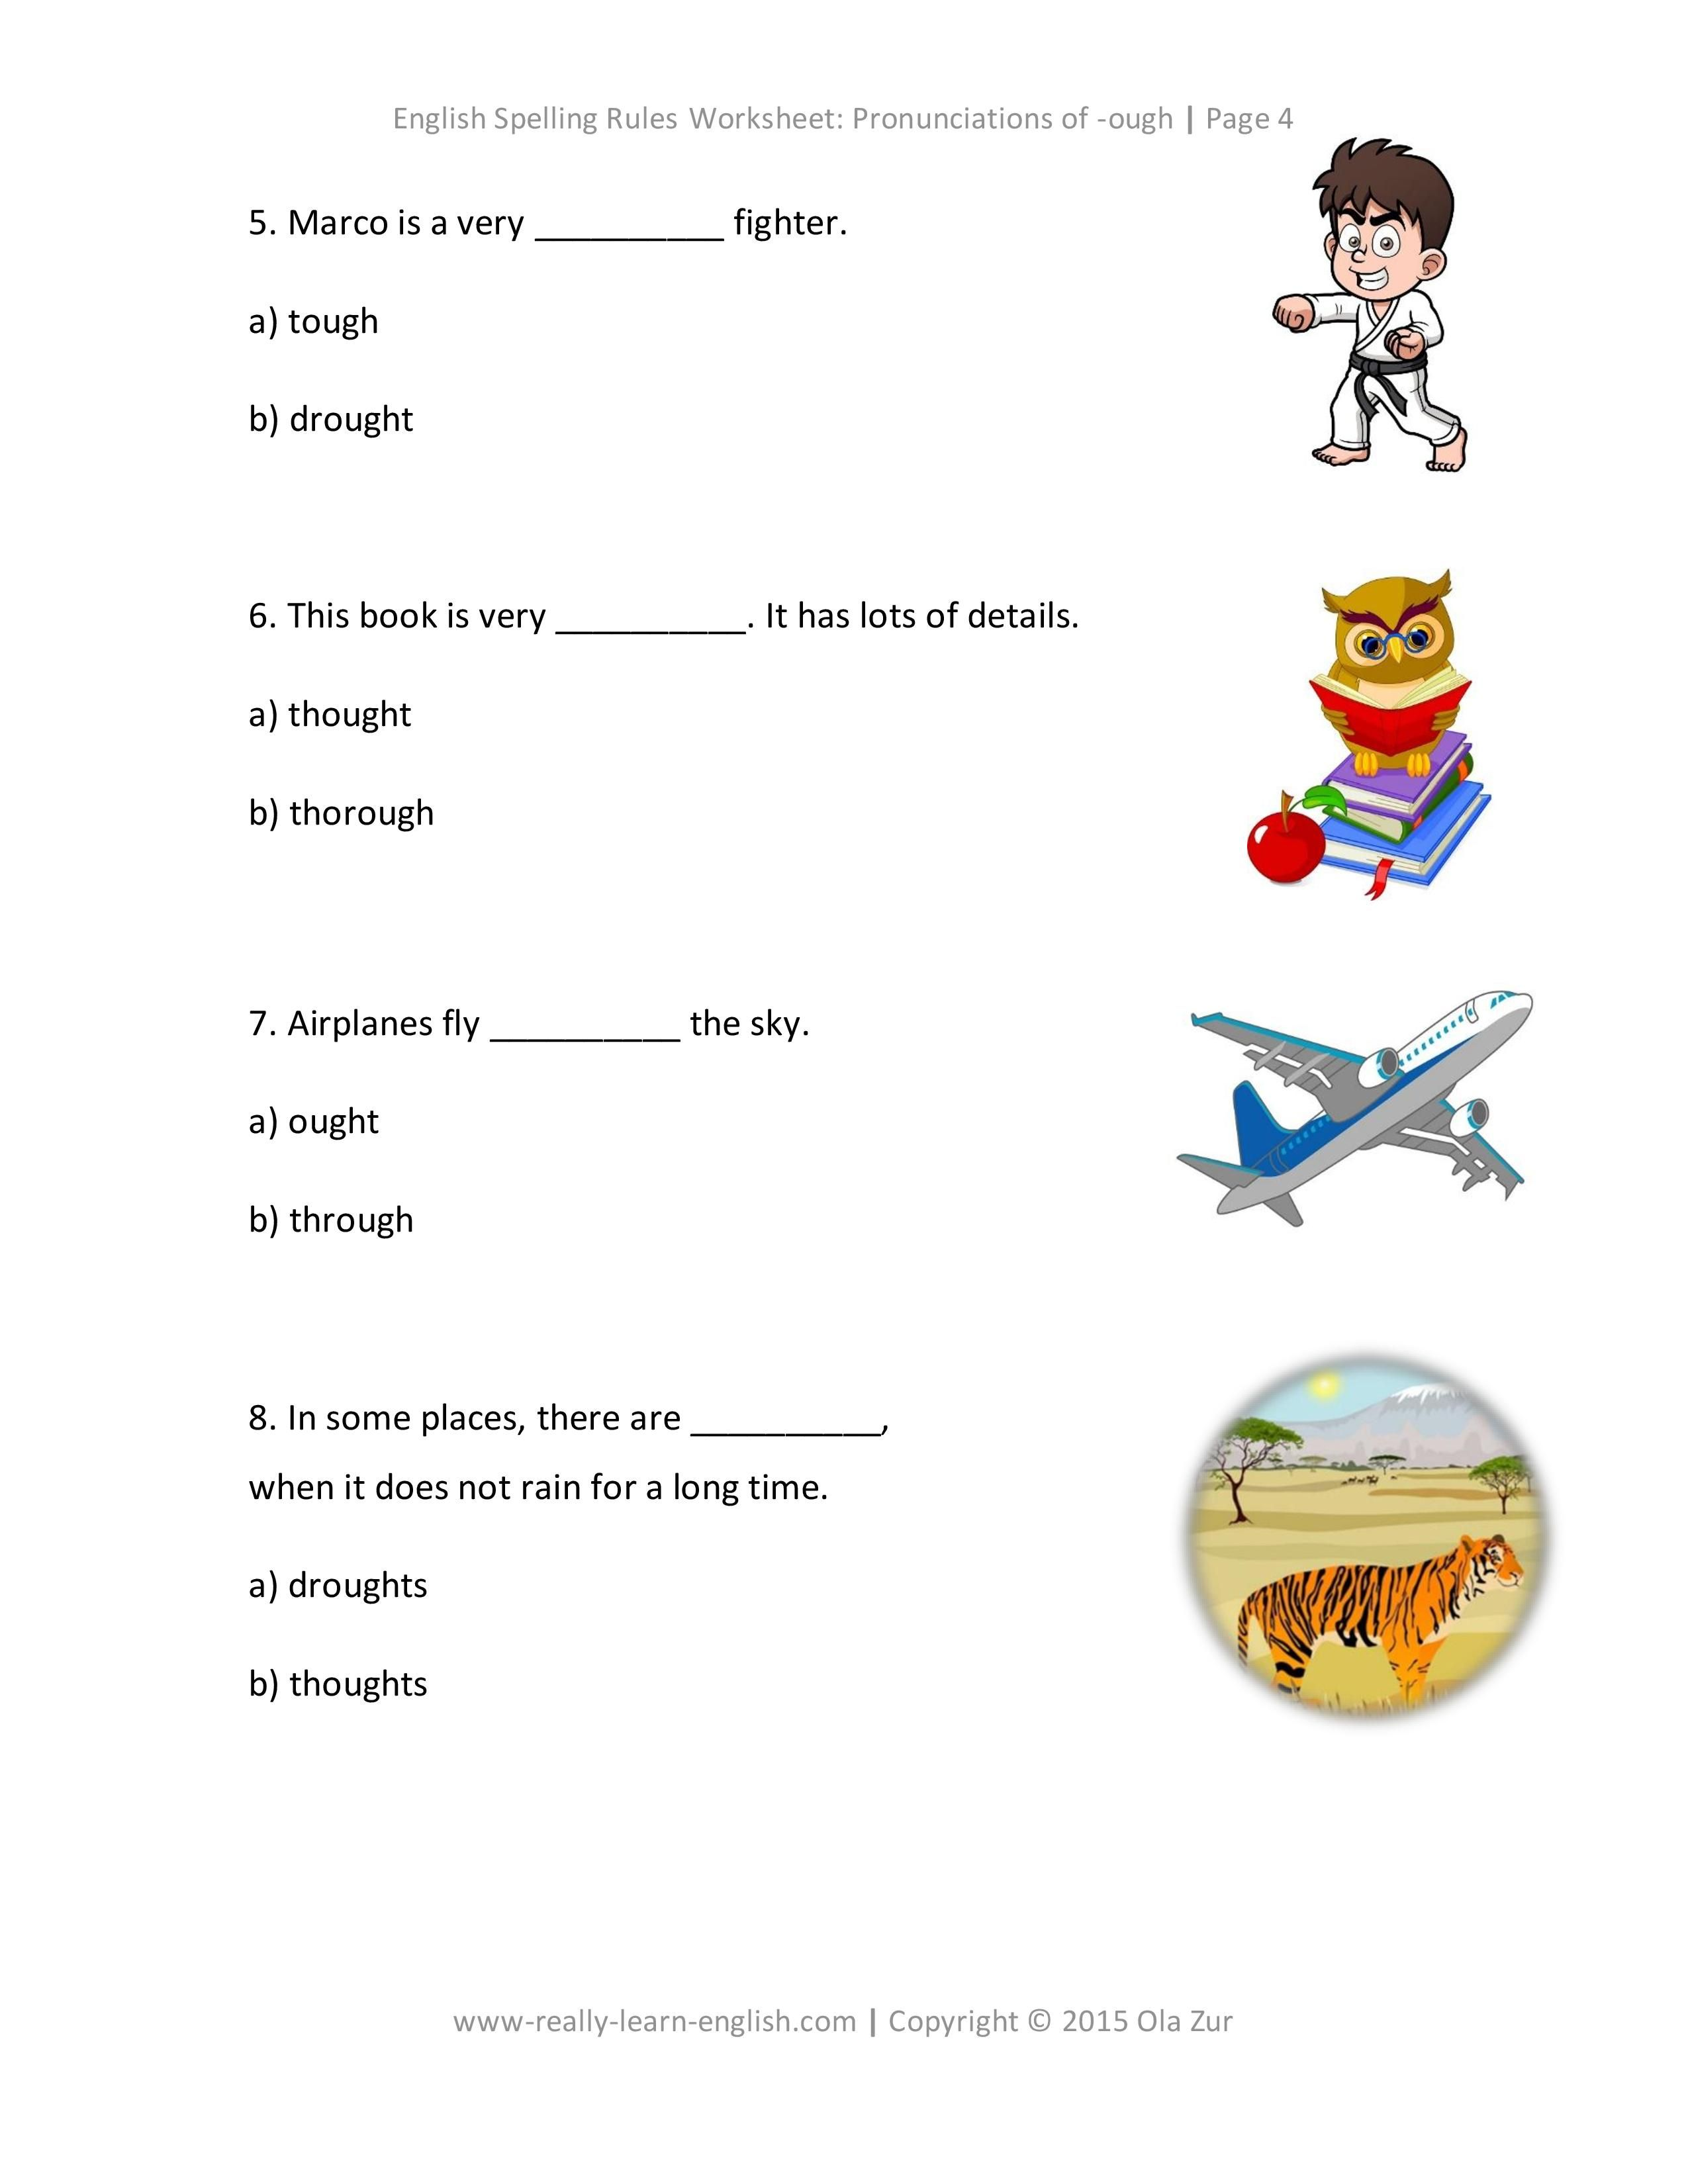 The Complete List Of English Spelling Rules Lesson 7